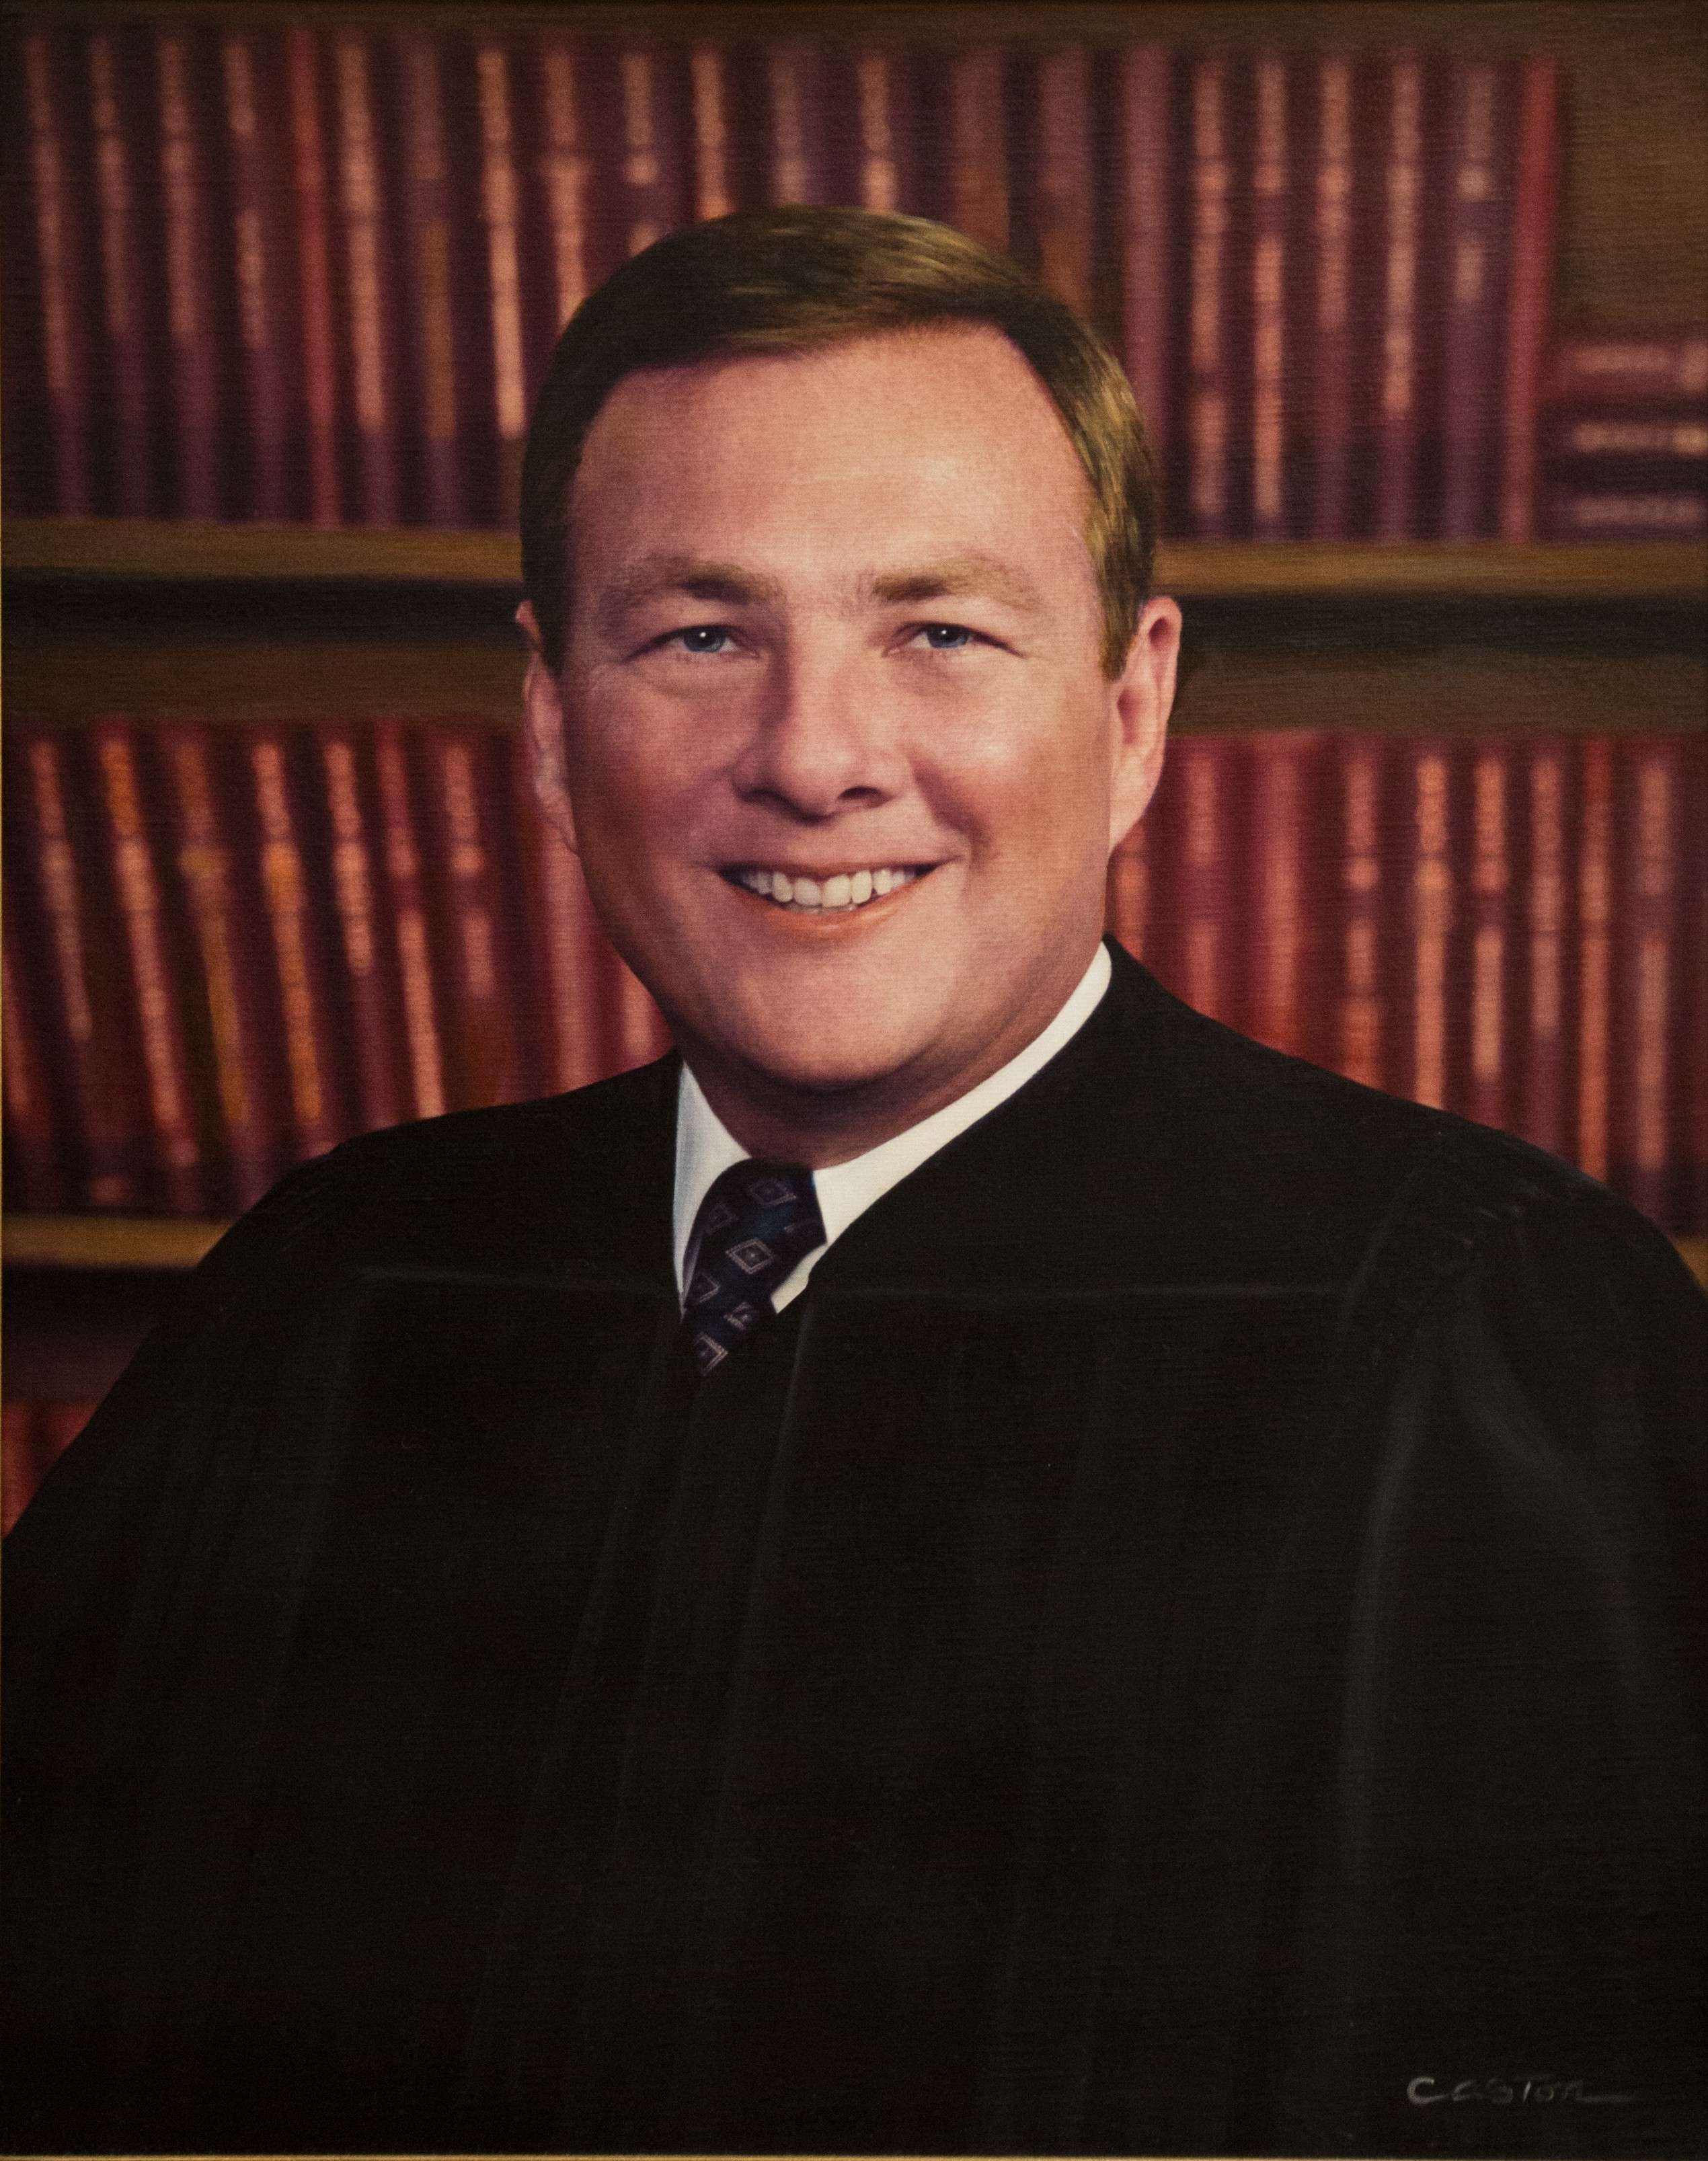 Judge Richard S. Bray